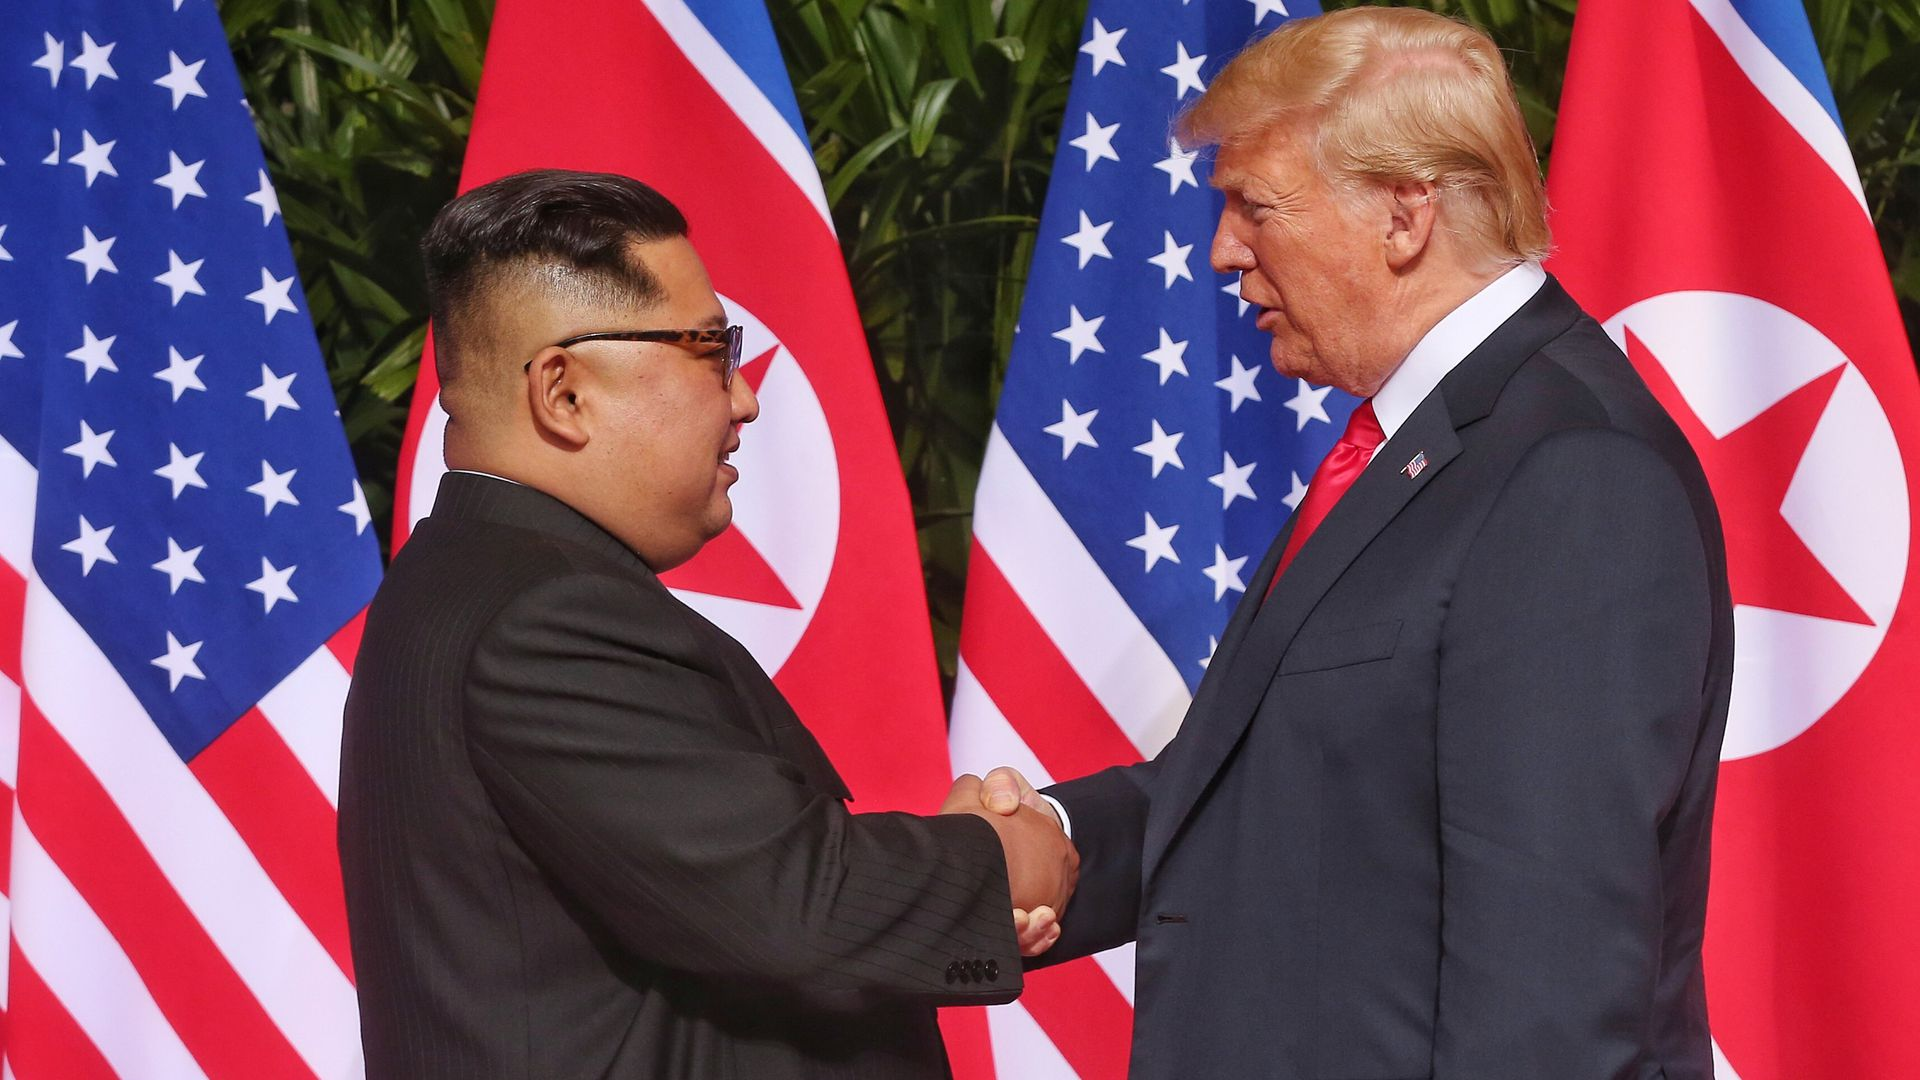 Donald Trump and Kim Jong-un shaking hands.